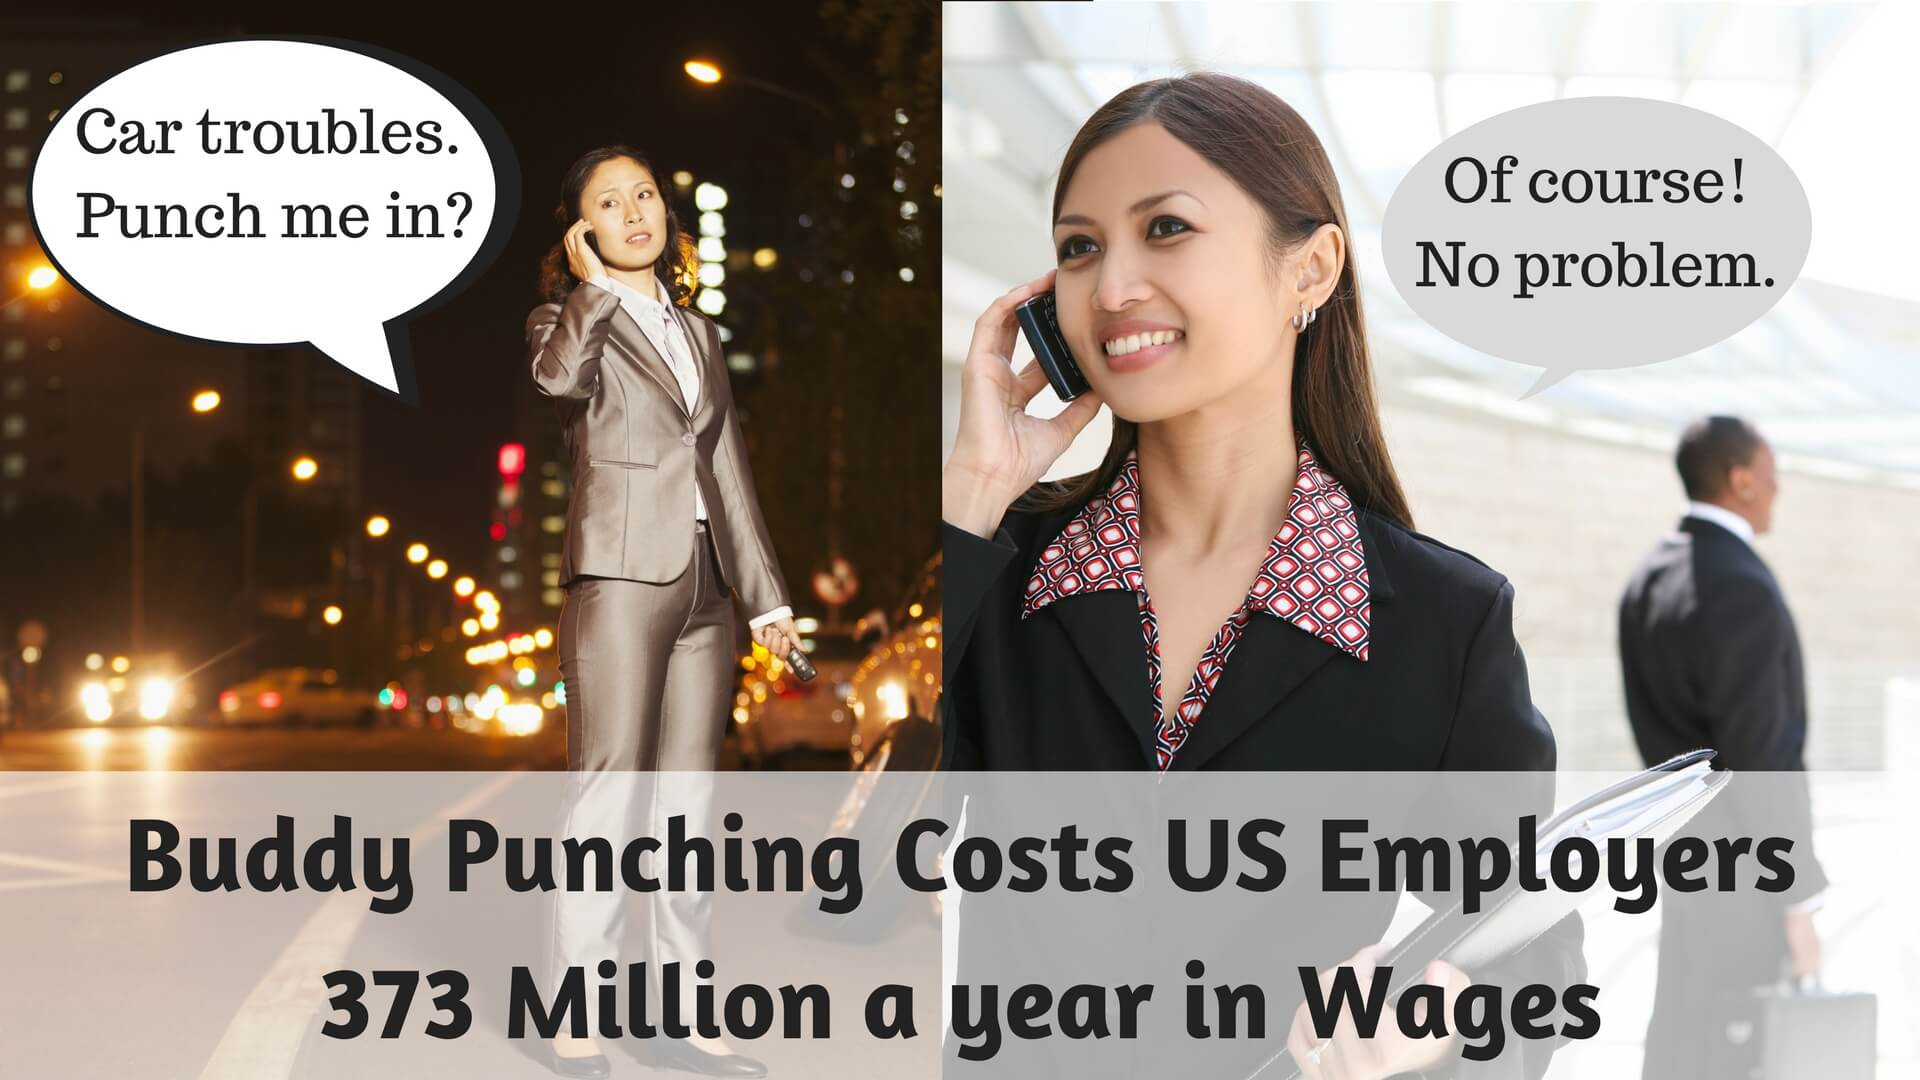 Buddy Punching is Costing Your Company & How to Stop It